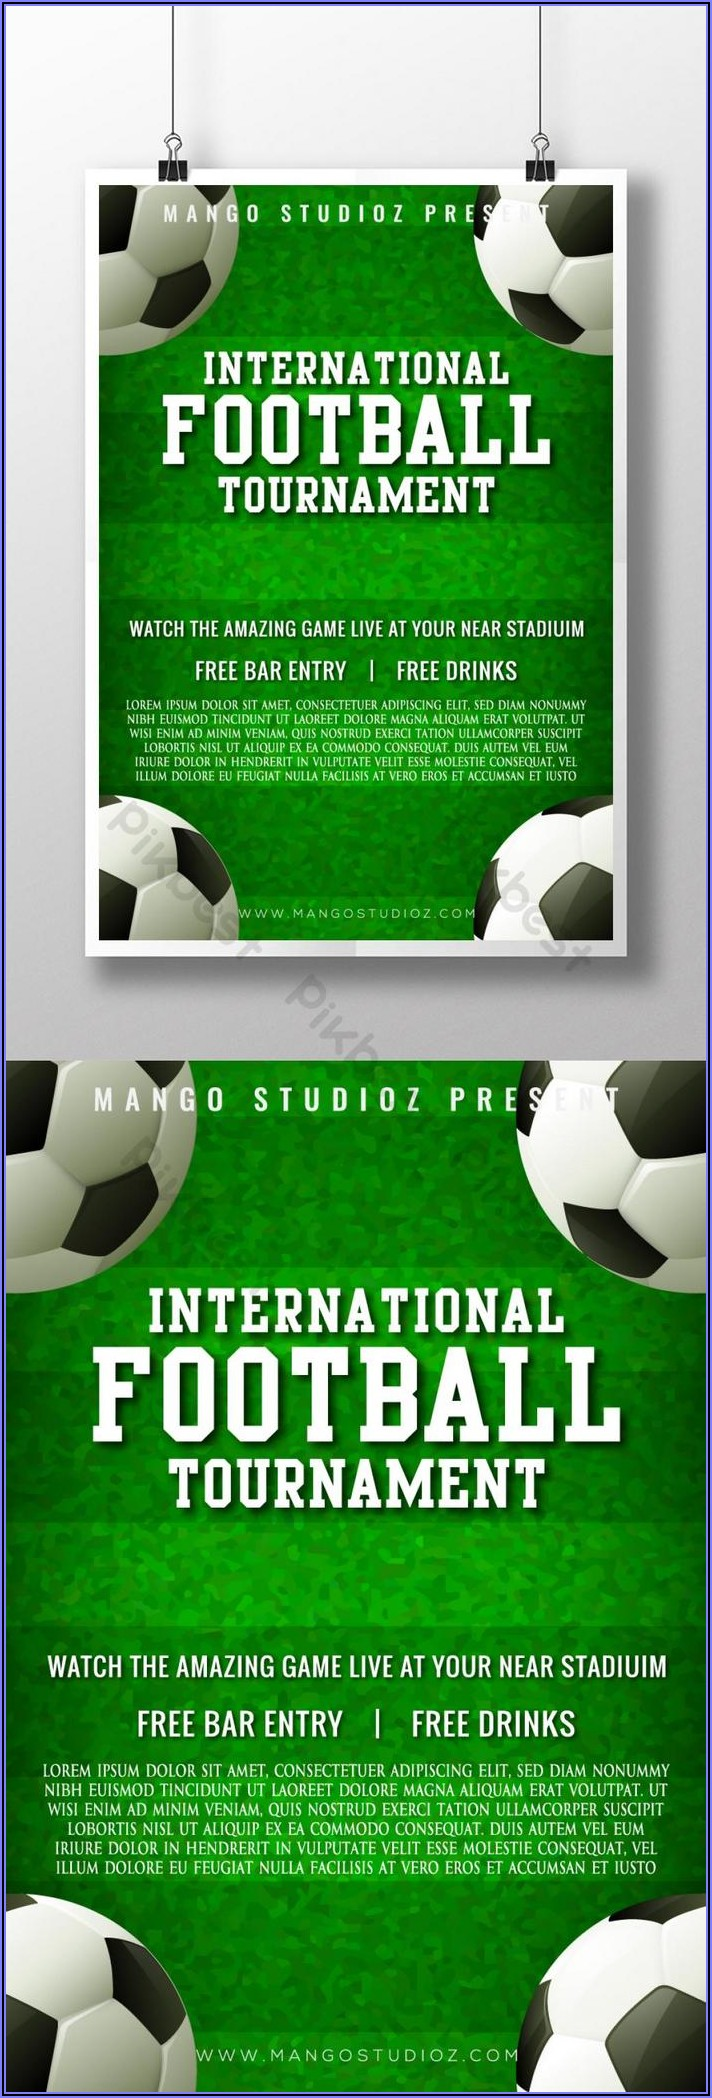 Football Tournament Poster Template Free